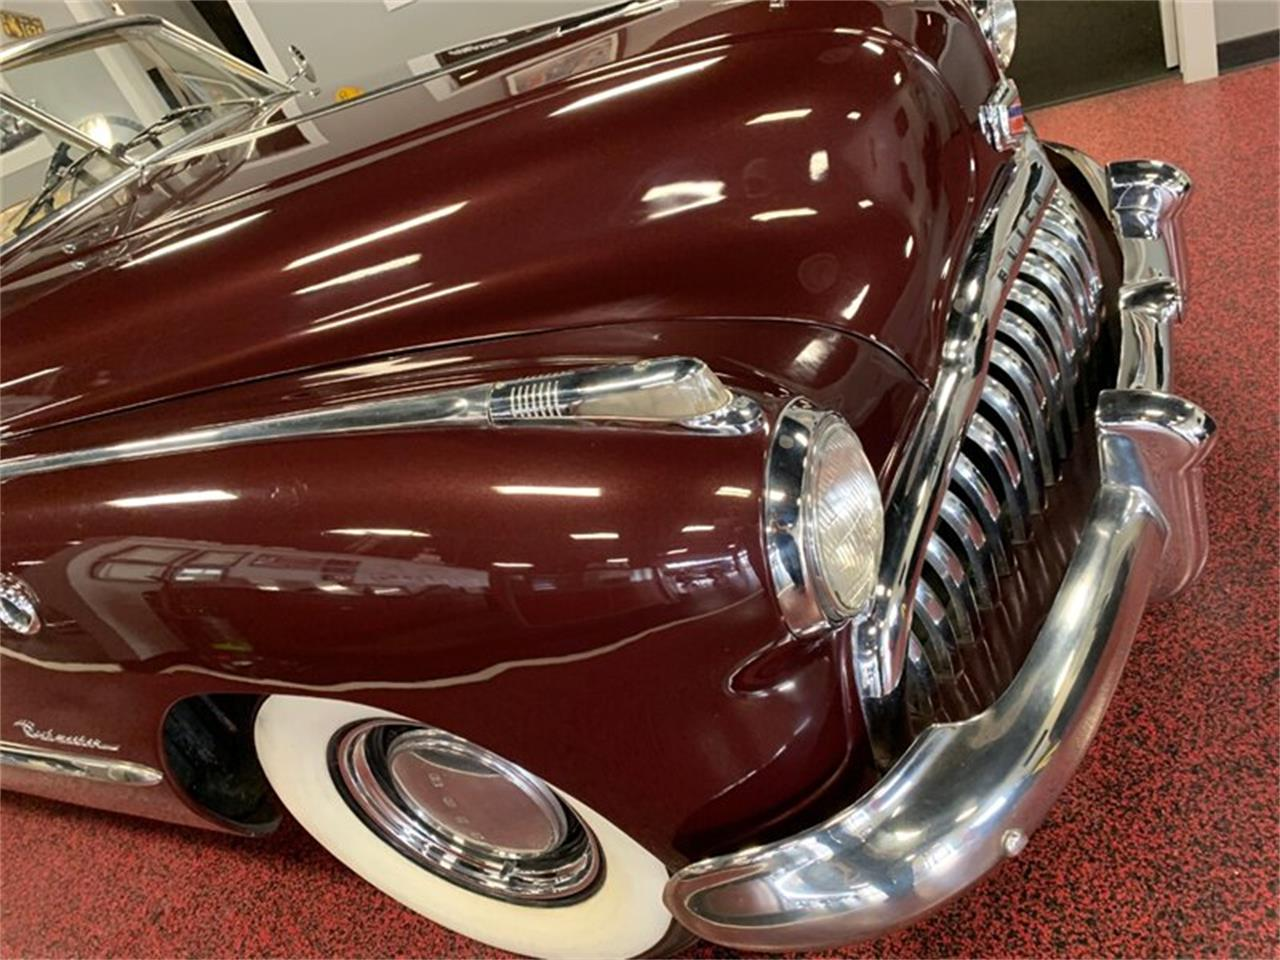 1949 Buick Roadmaster for sale in Bismarck, ND – photo 2